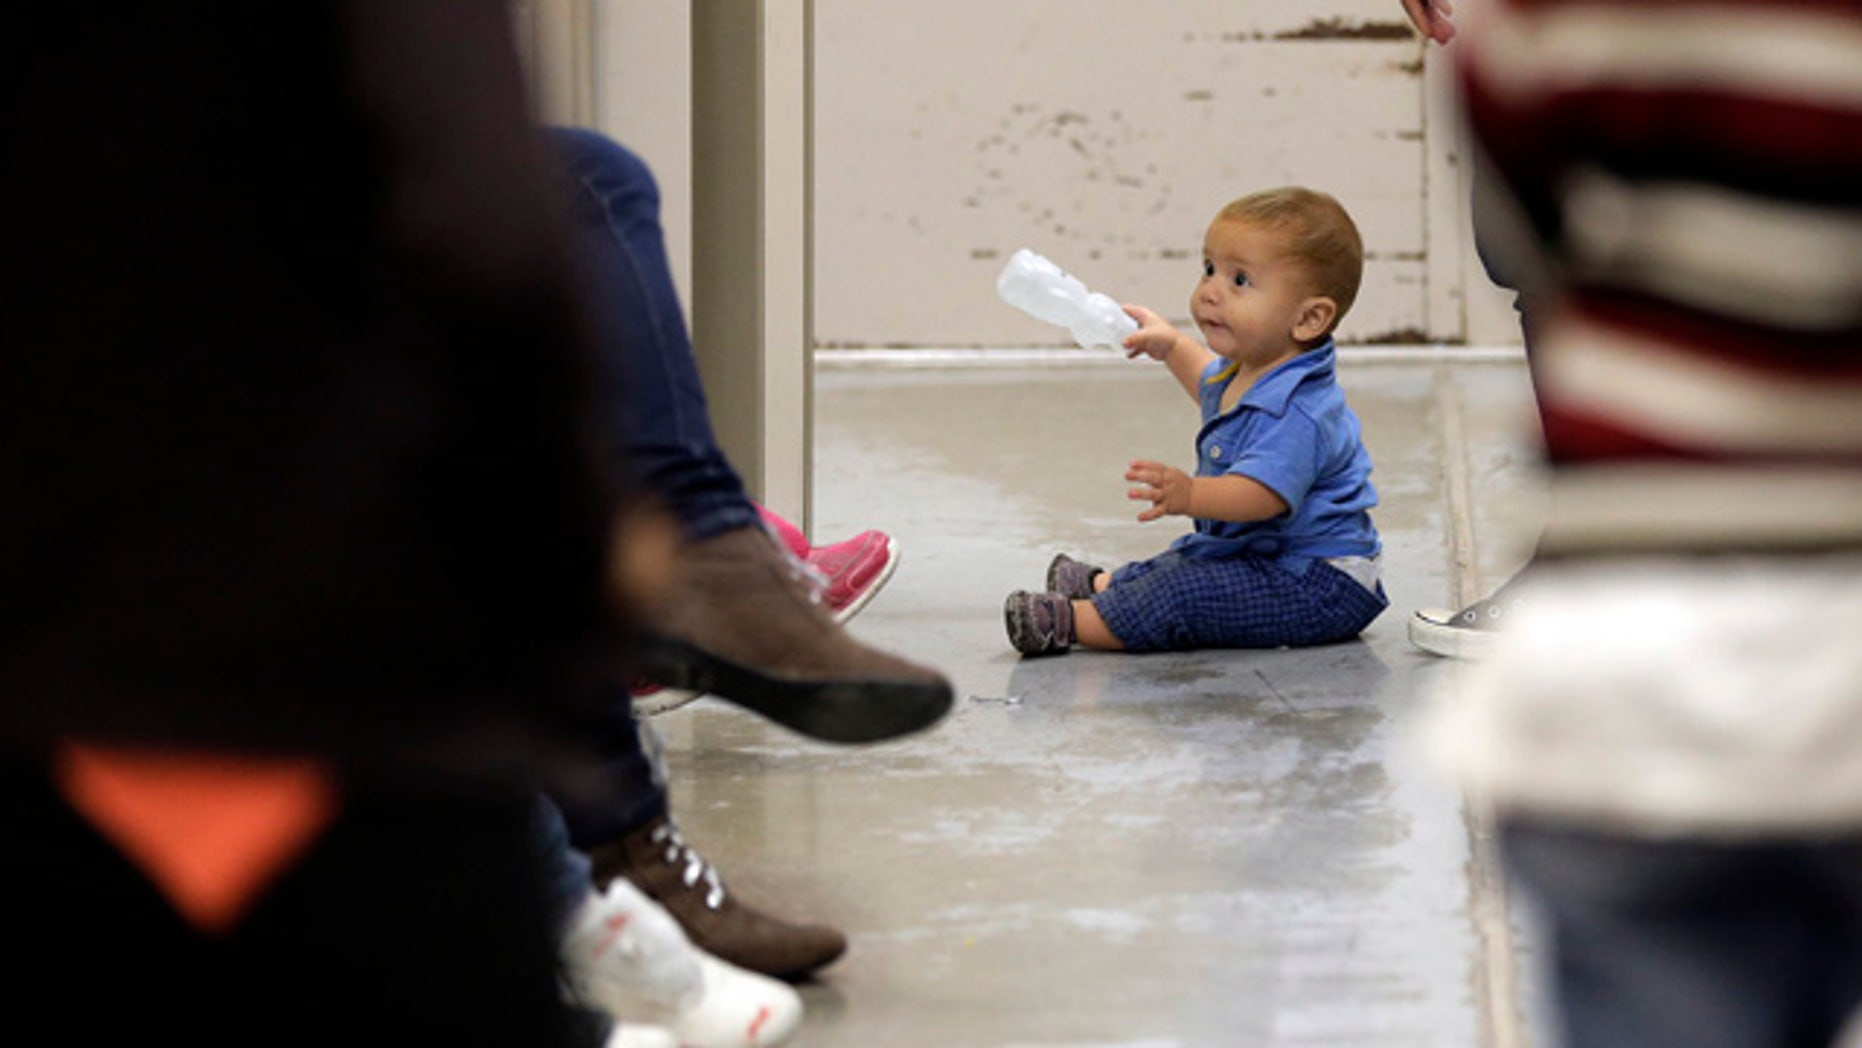 June 18, 2014: A toddler sits on the floor with other detainees at a U.S. Customs and Border Protection processing facility in Brownsville,Texas. (AP Photo/Eric Gay, Pool)